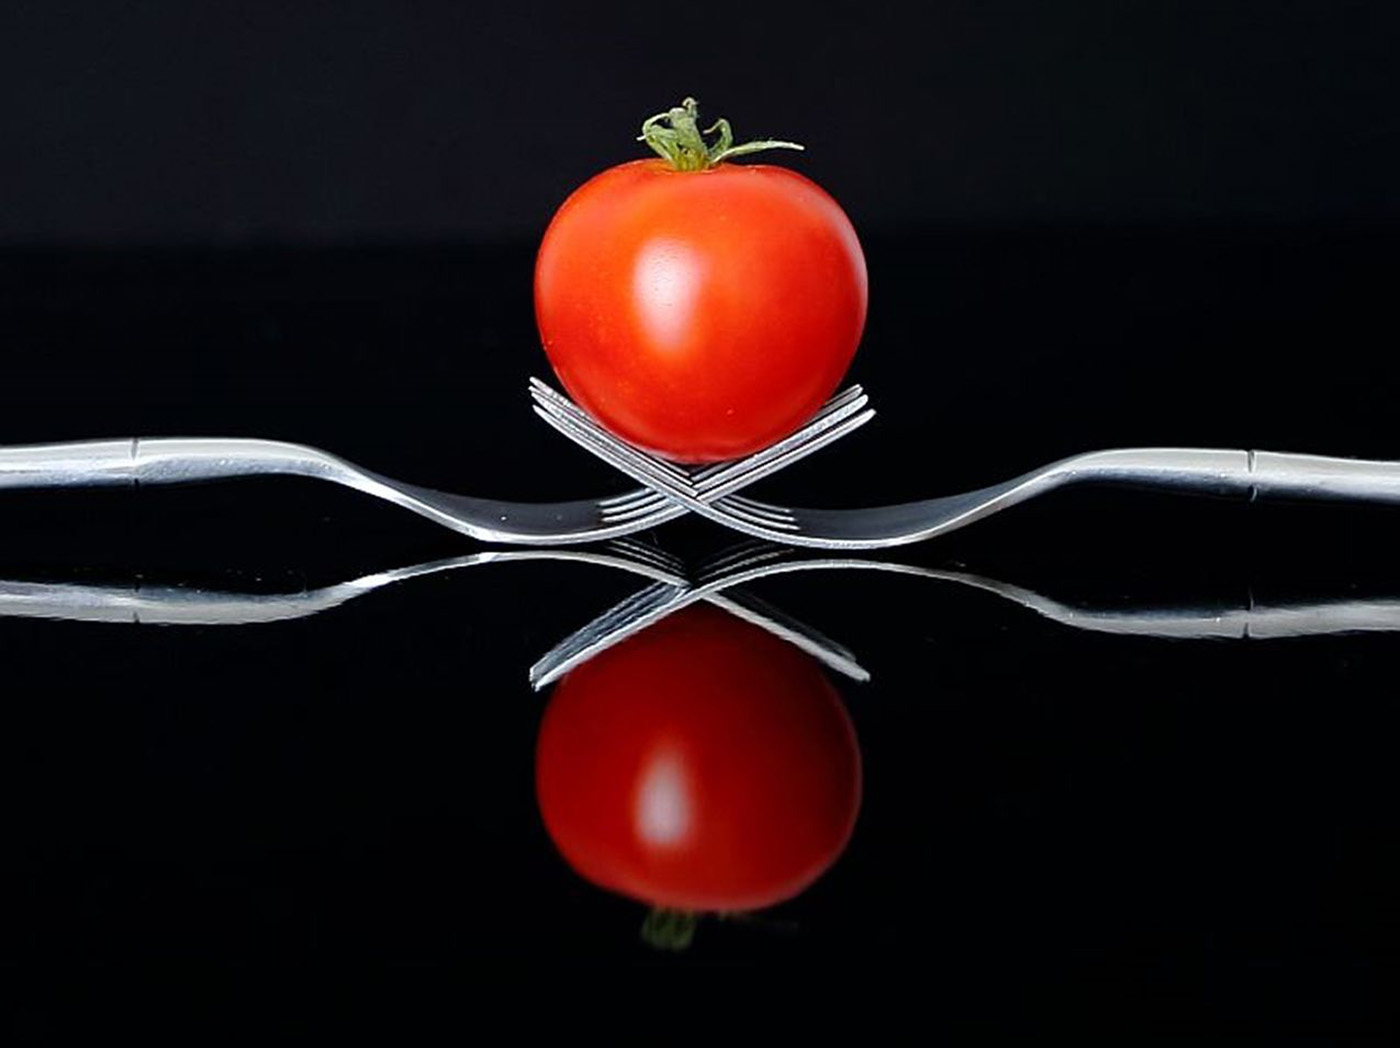 John Morris Tomato and Forks 20Points club 10Points A